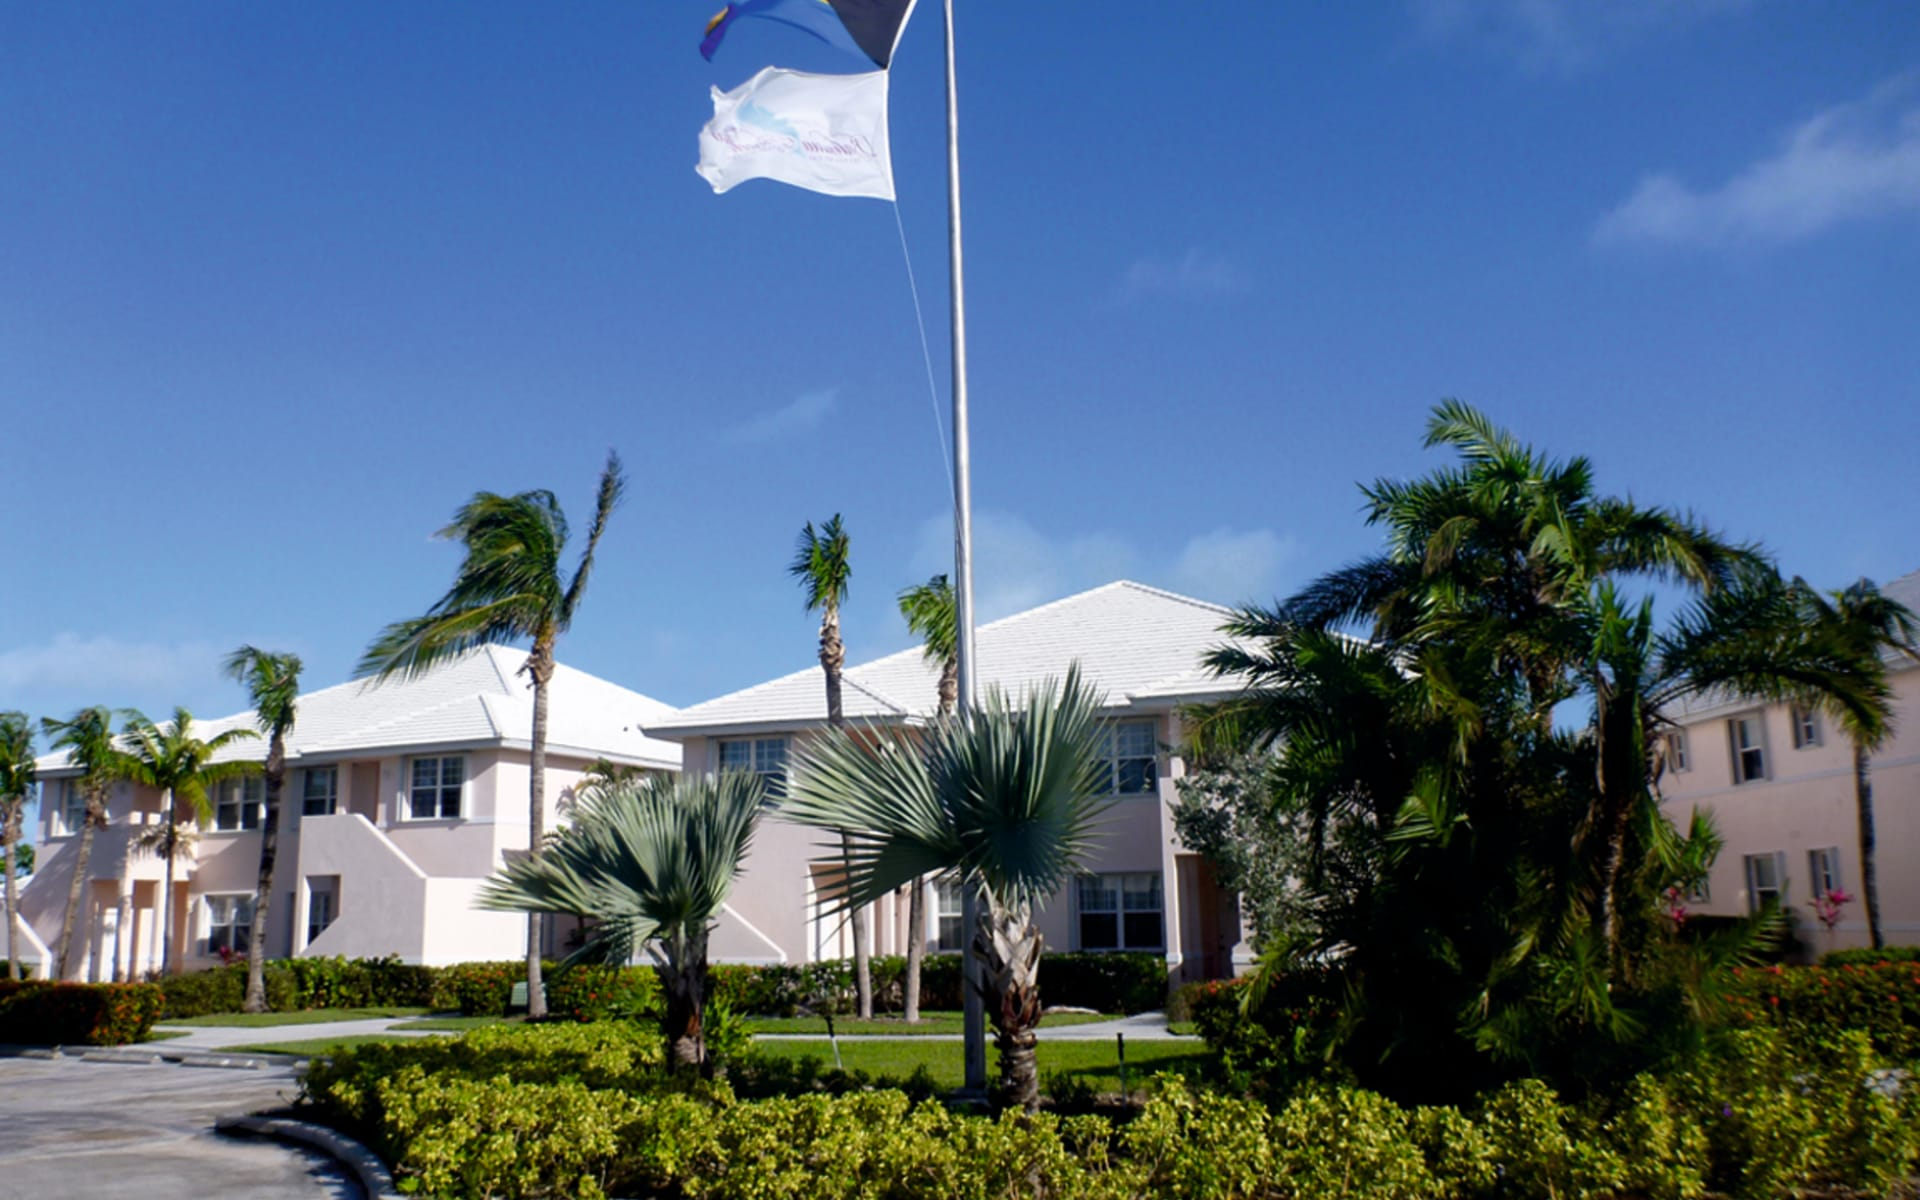 Bahama Beach Club in Treasure Cay: exterior bahama beach club fahne hotelansicht gartenanlage